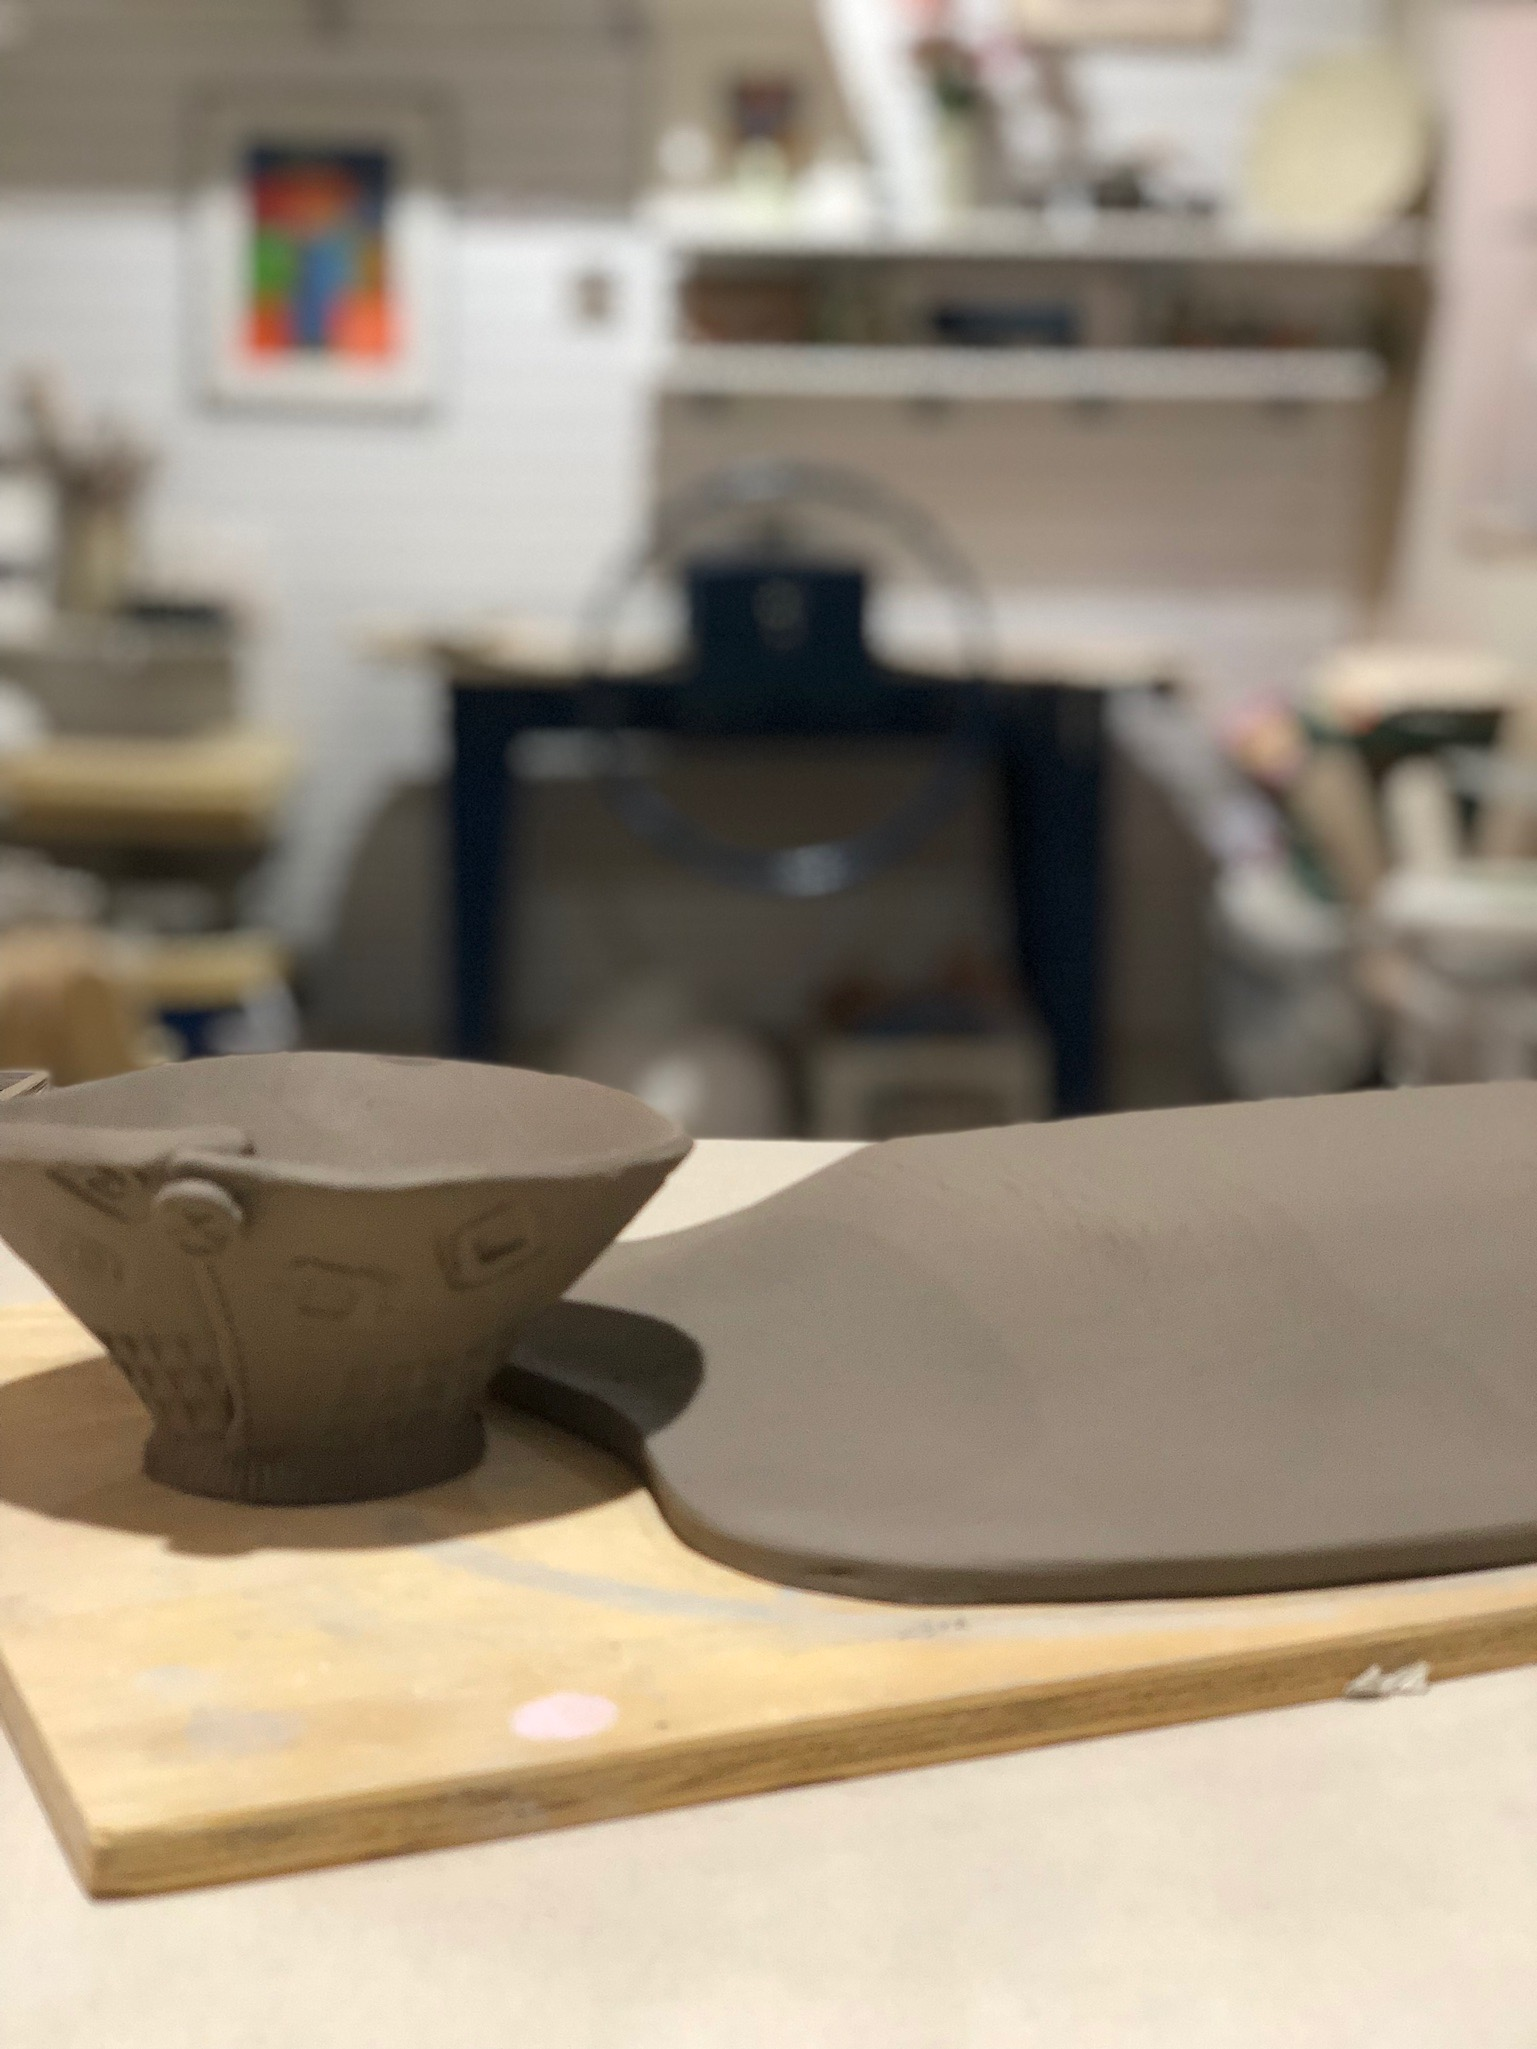 One of the first items I created with my North Star slab roller was a tray and bowl set. It remains one of my most popular items. The current design features matching texture elements on the bowl and tray.